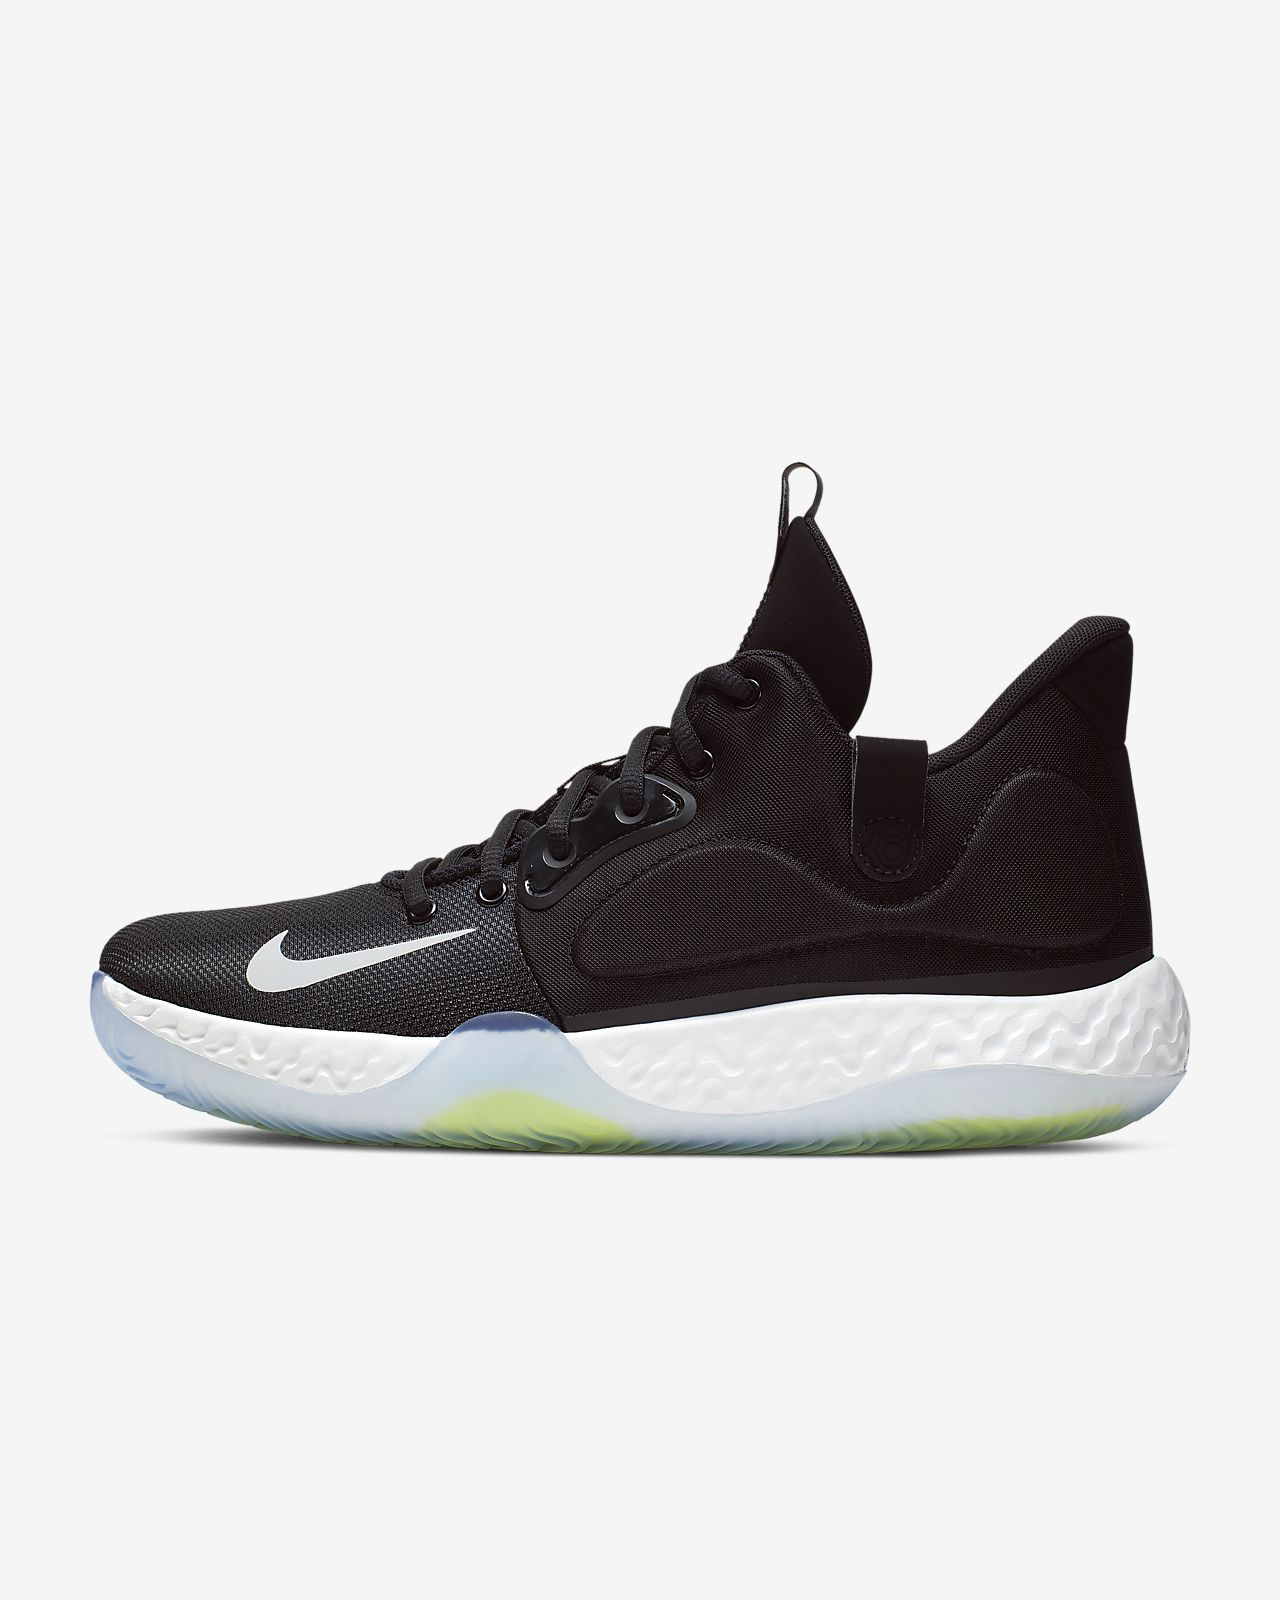 Nike Kyrie 4 Sneaker Sales July 27, 2018 | Sole Collector